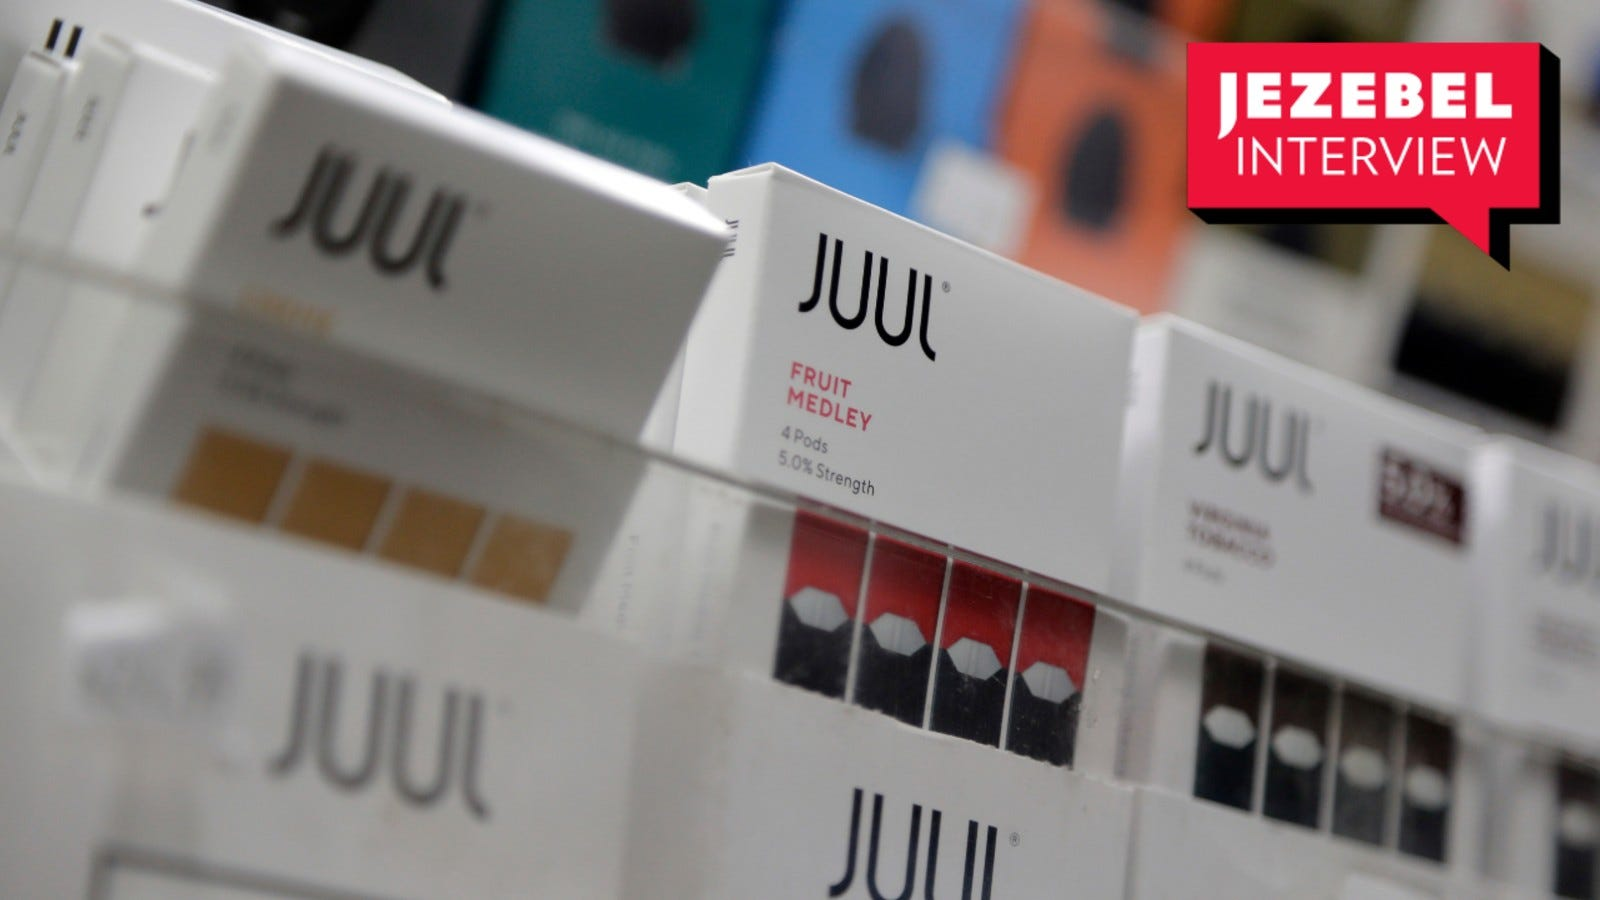 Juuling is Fine, Actually (For Adults Who Want to Quit Smoking Cigarettes)